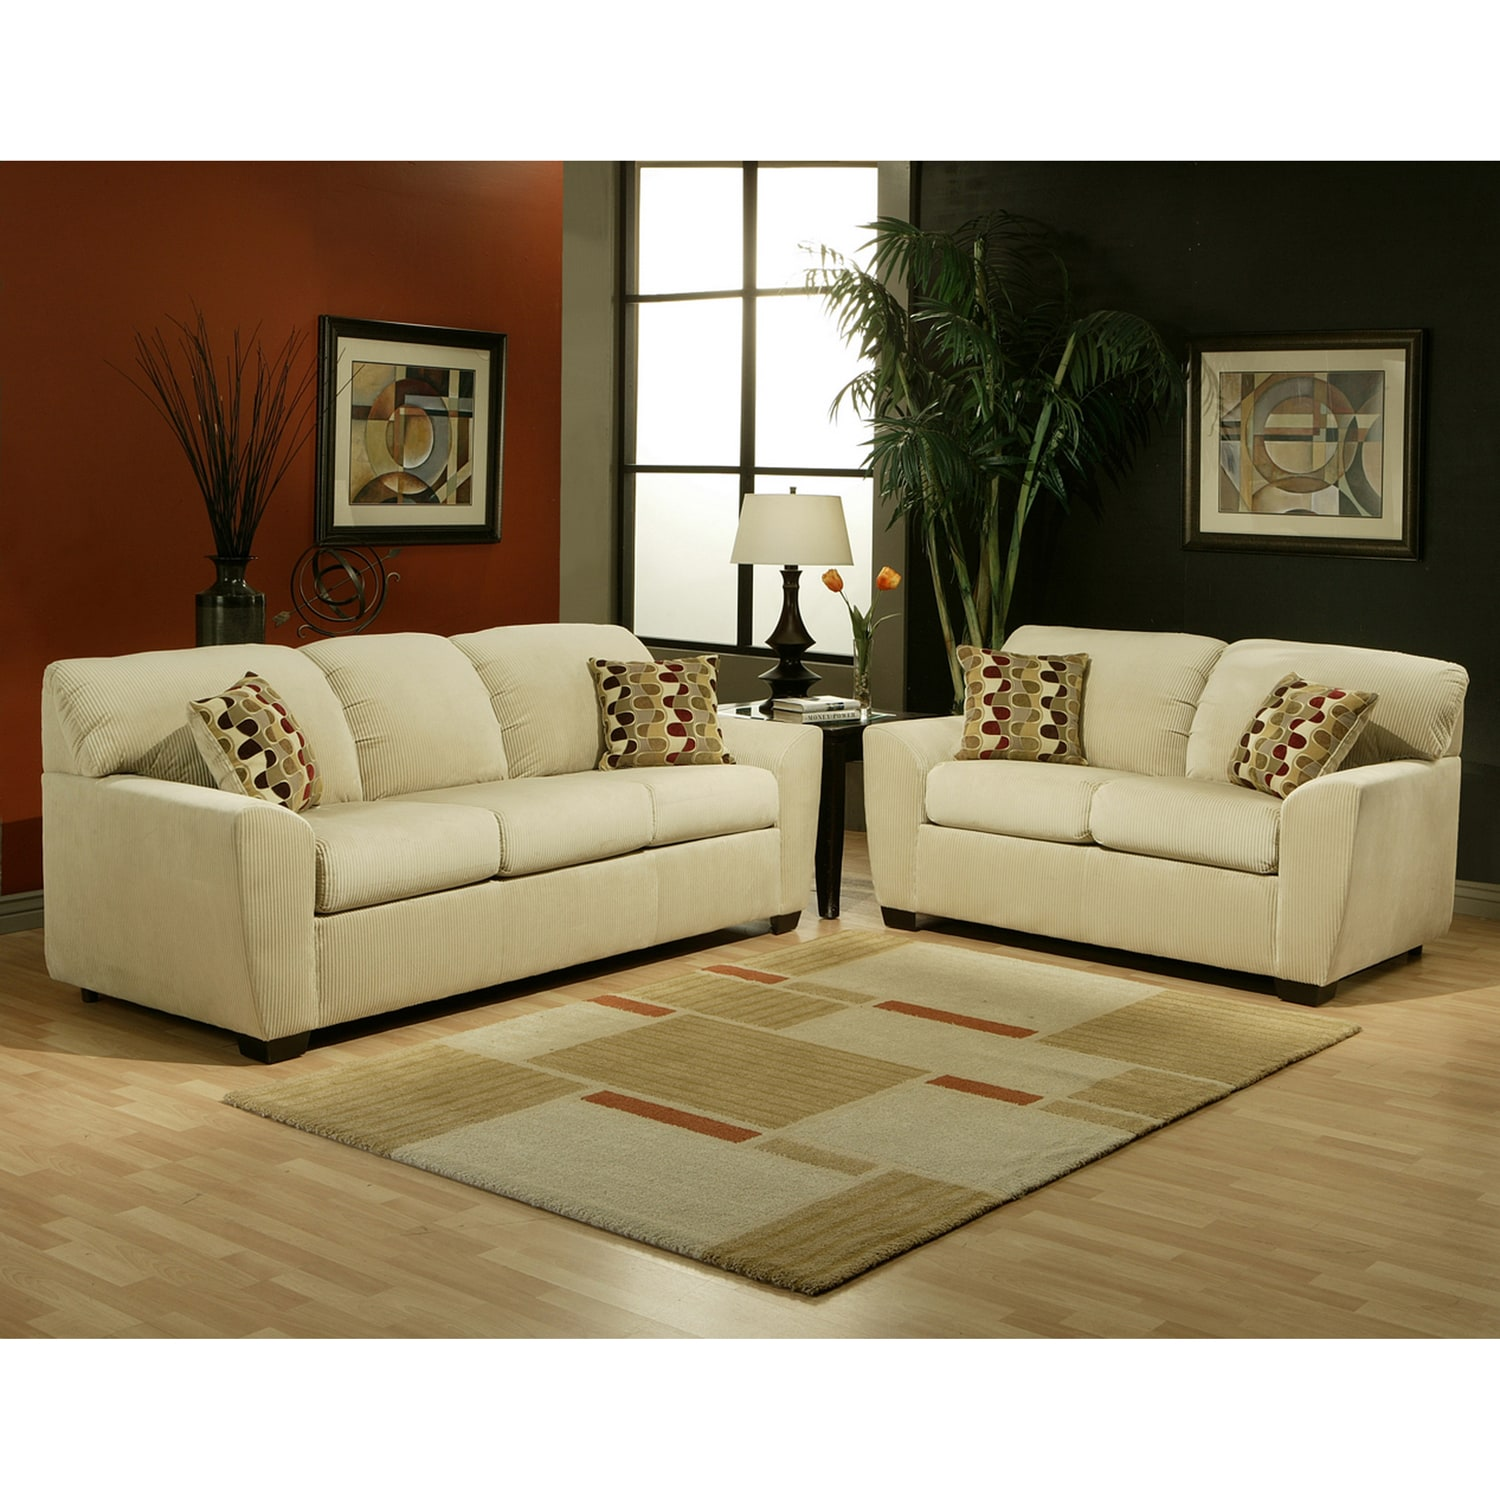 Furniture of america boxer micro velvet wheat 2 piece sofa for Sofa set deals